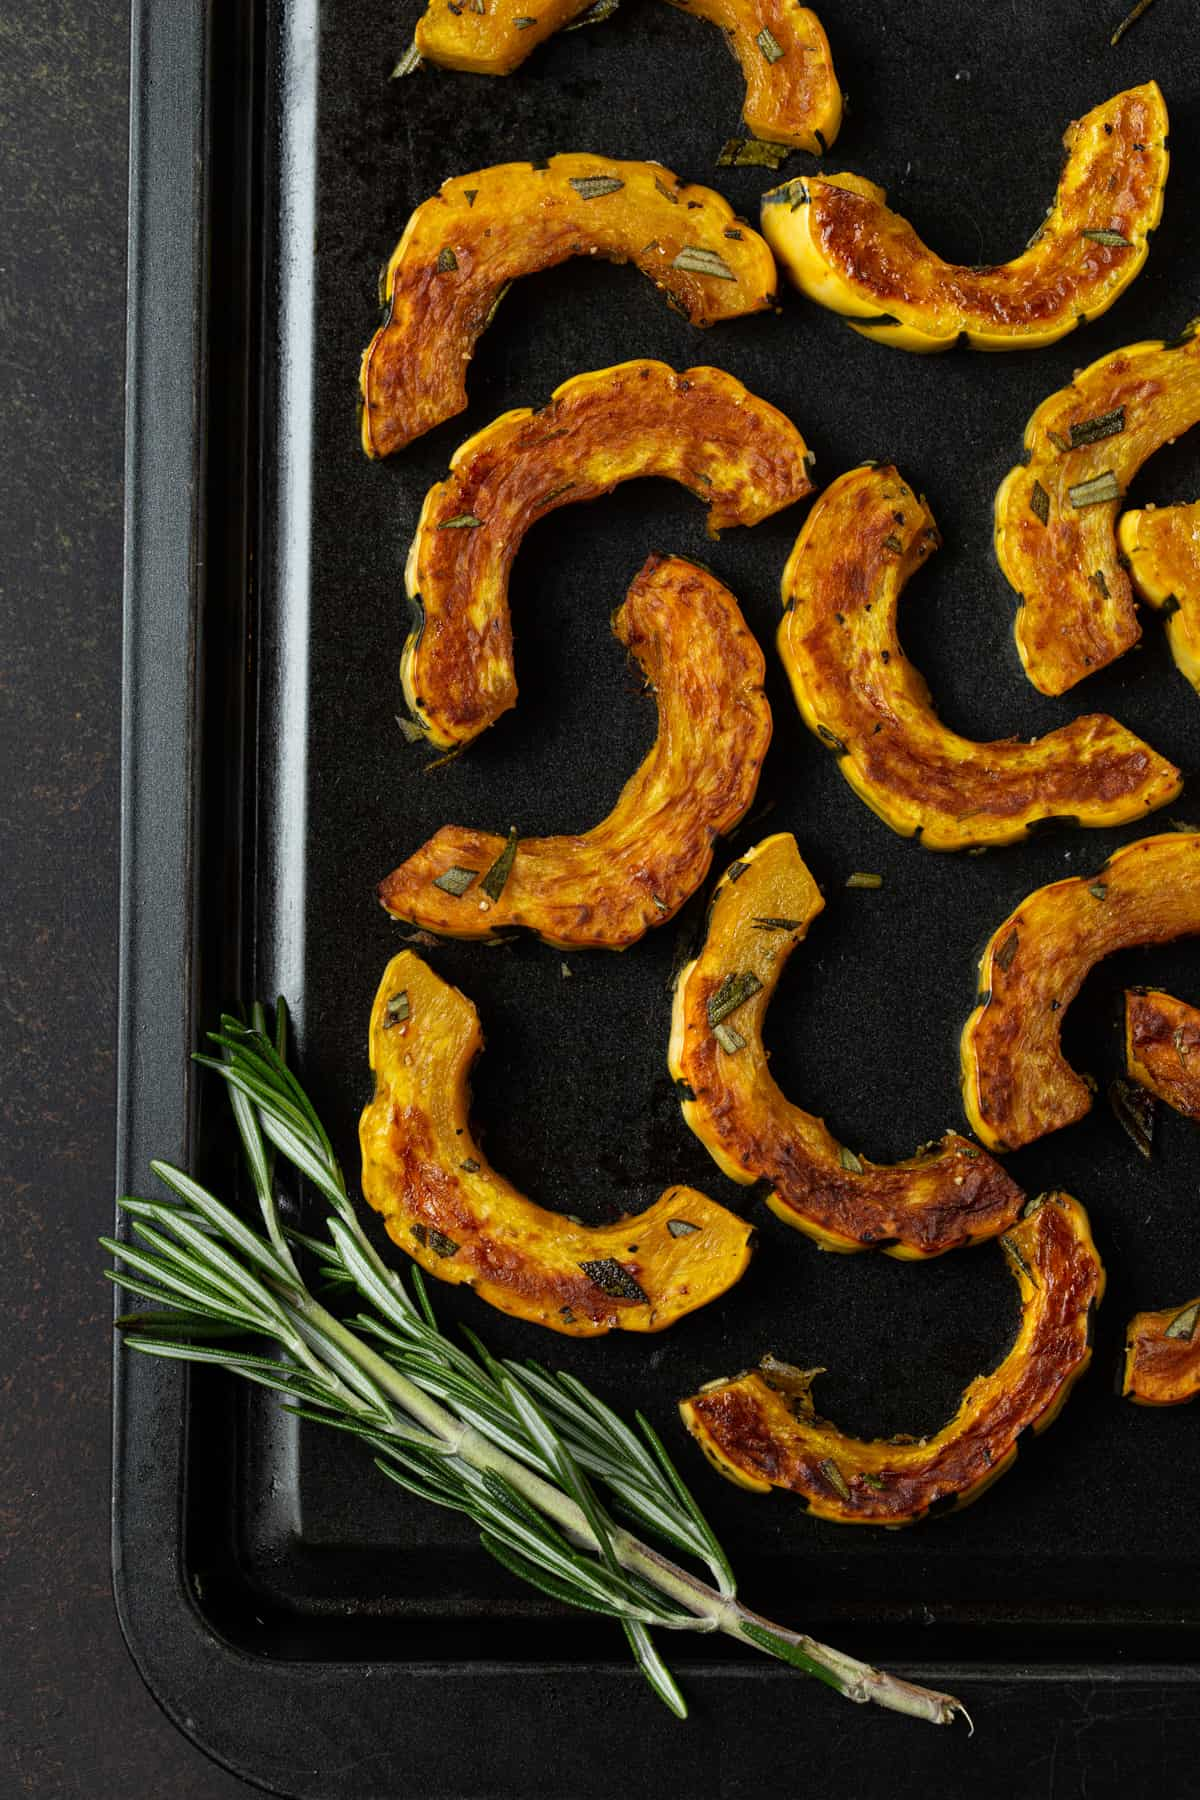 roasted squash pieces on a dark sheet pan with fresh rosemary.